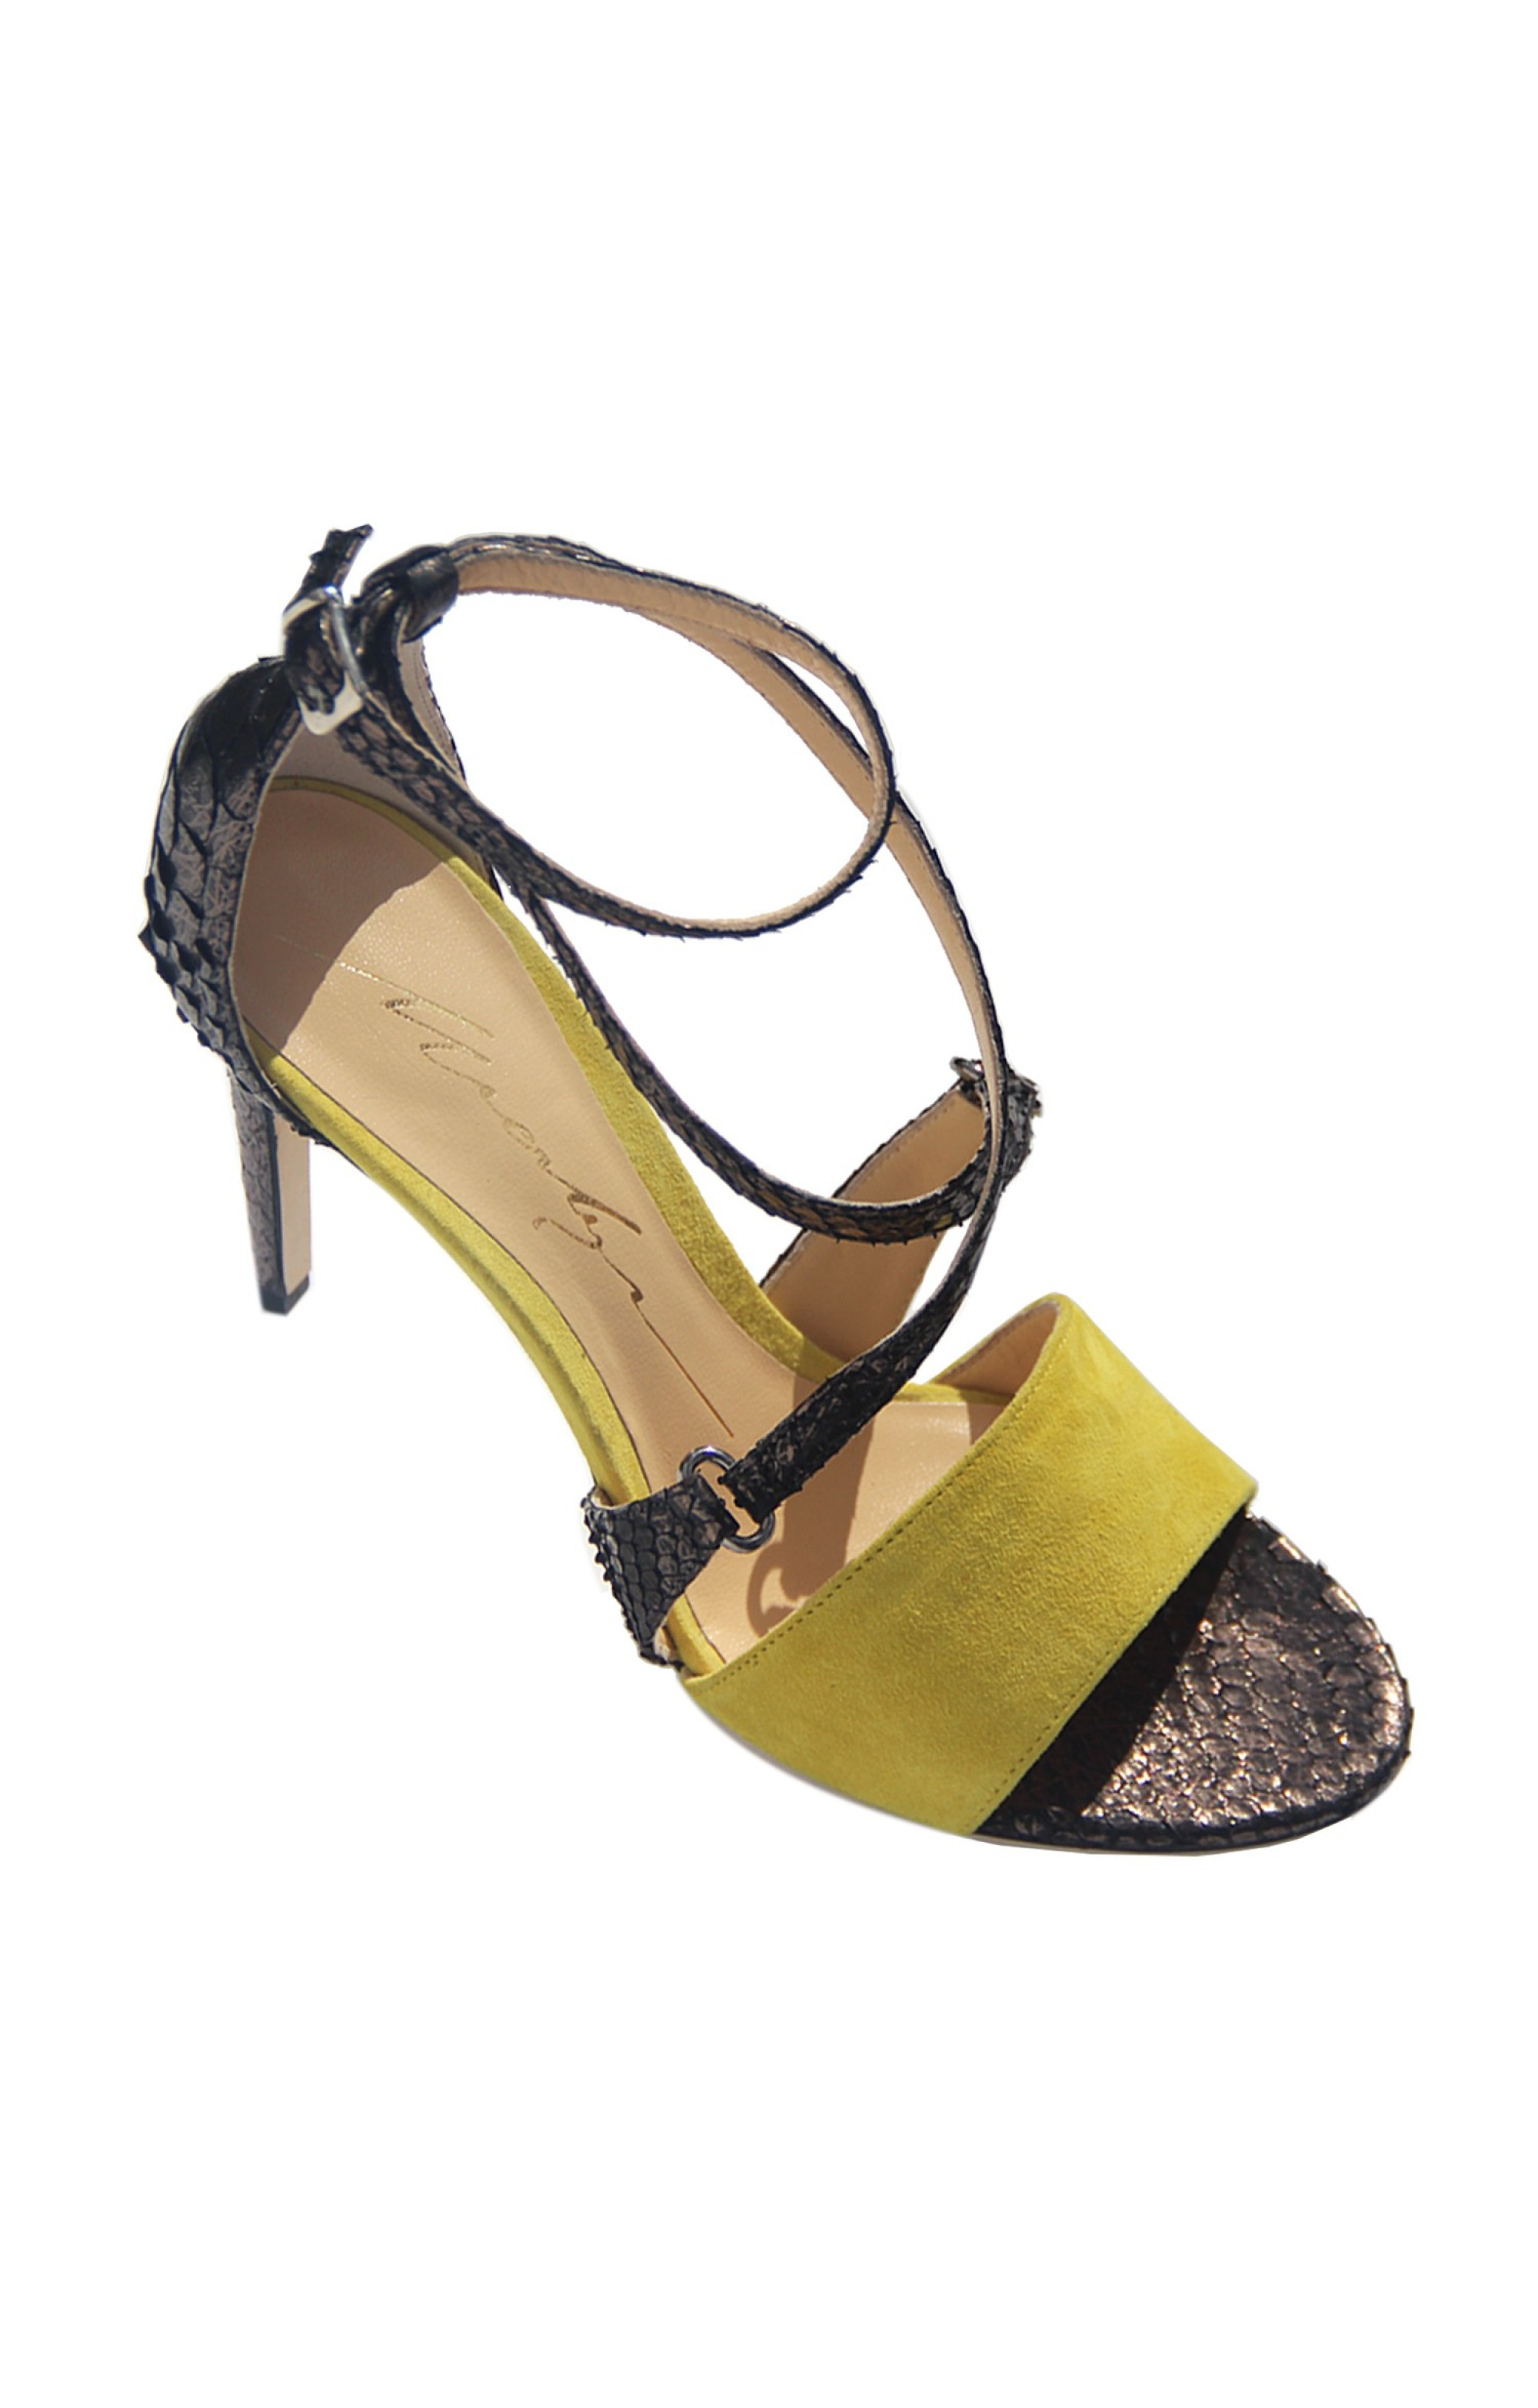 Merlyn Leder High Heels YELLOW SUEDE